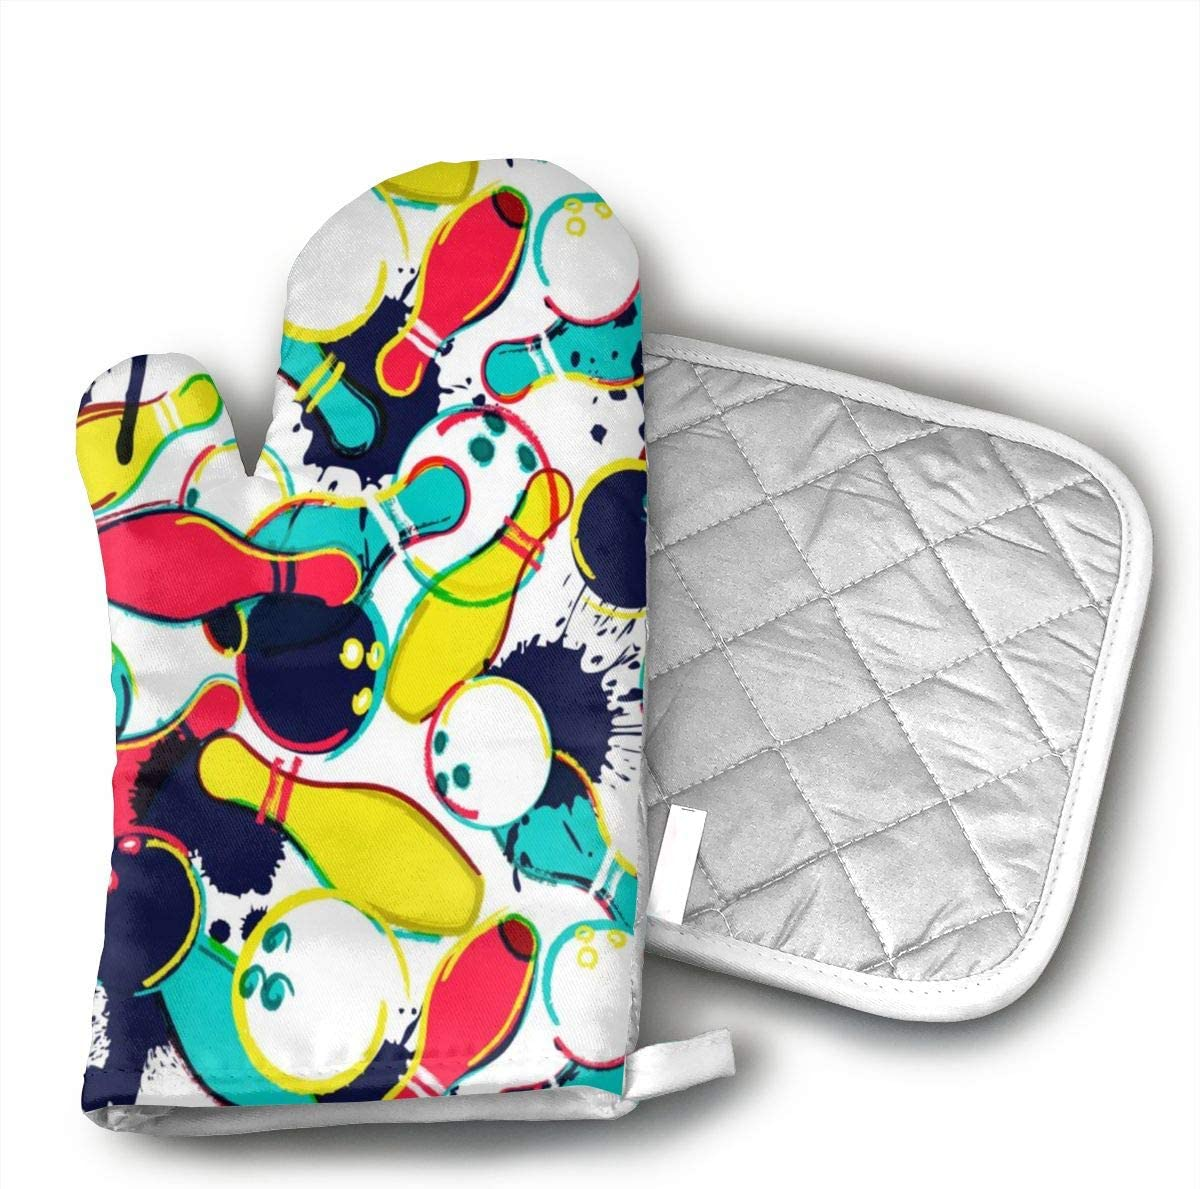 NOT Abstract Watercolor Bowling Ball Oven Mitts,Heat Resistant Oven Gloves Insulation Thickening Cotton Gloves Baking Kitchen Cooking Mittens with Soft Inner Lining